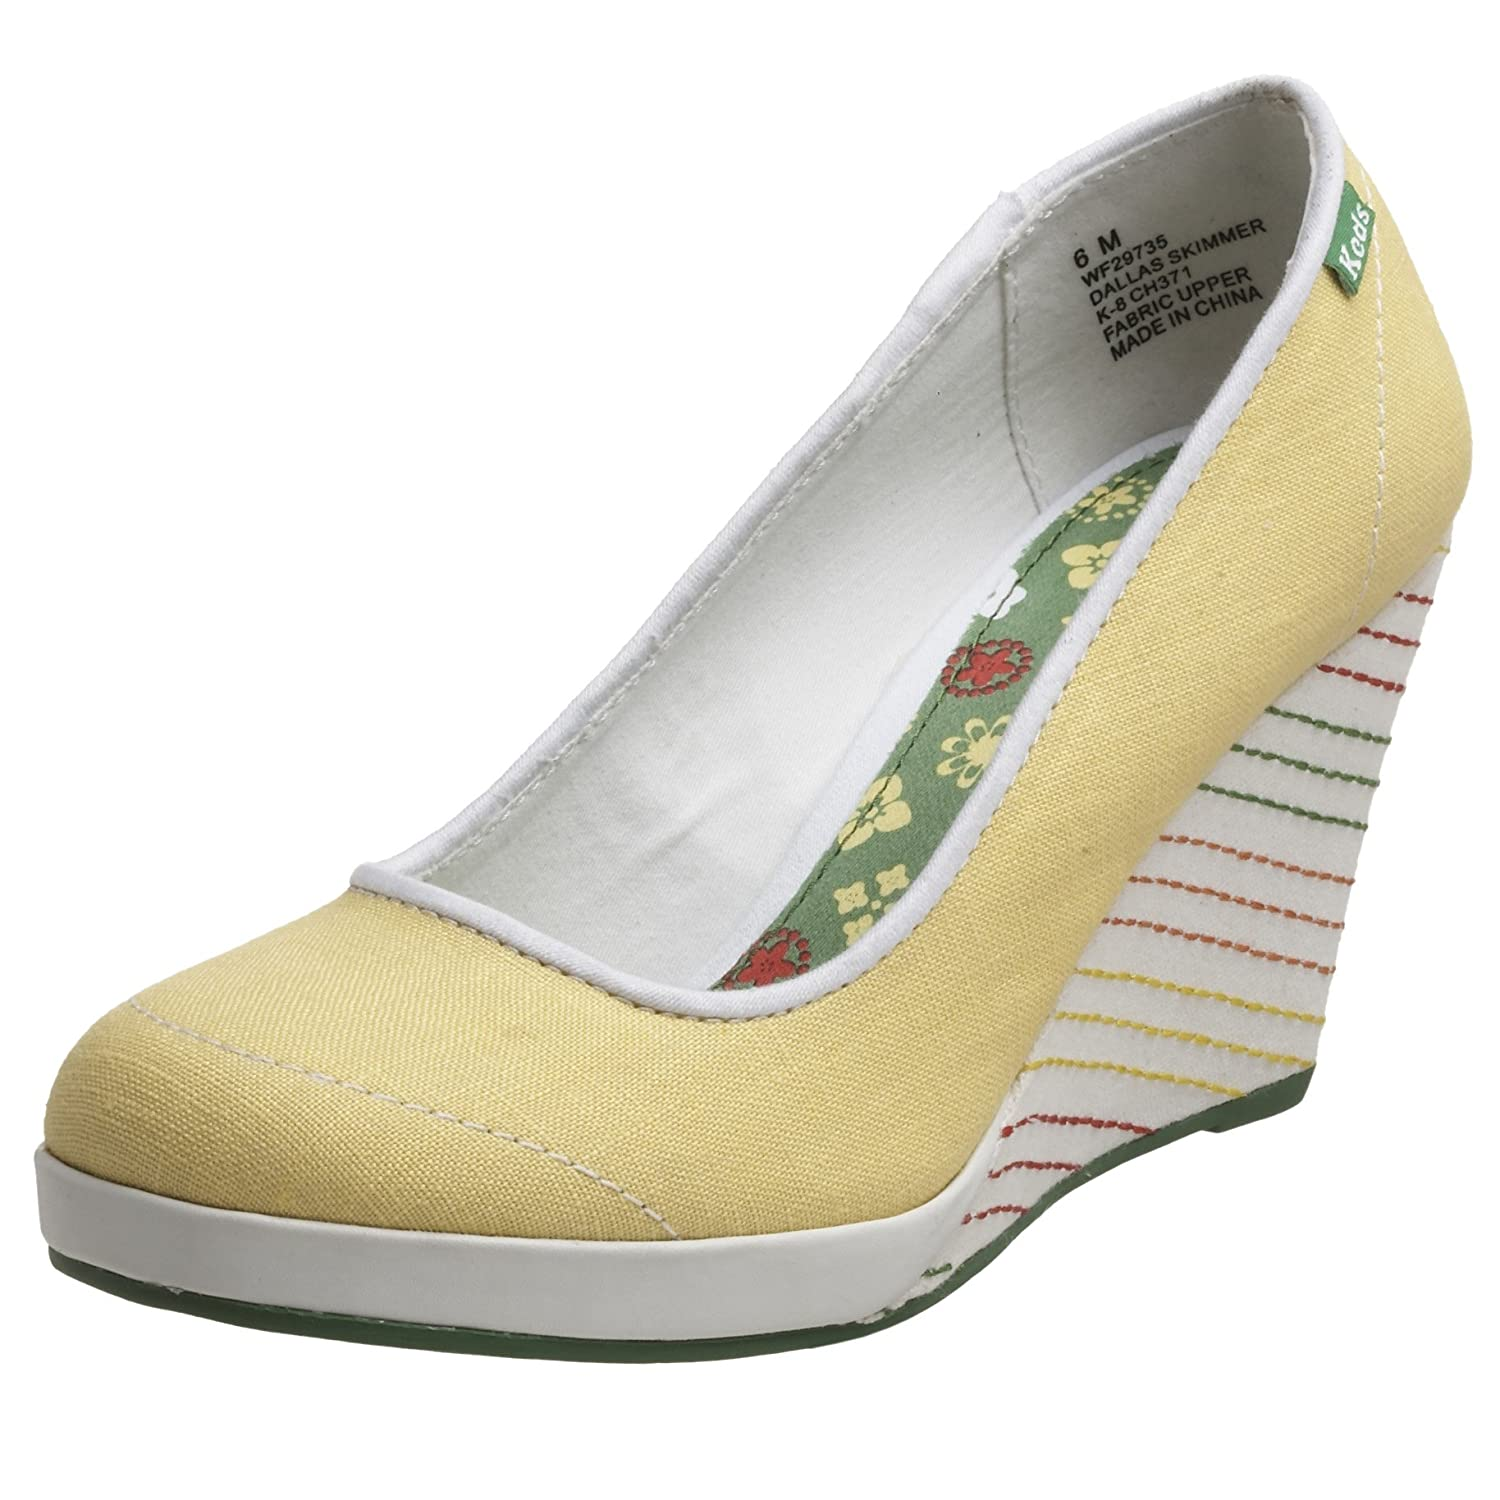 Keds Women&#039;s Dallas Skimmer Wedge - Free Overnight Shipping &amp; Return Shipping: Endless.com from endless.com